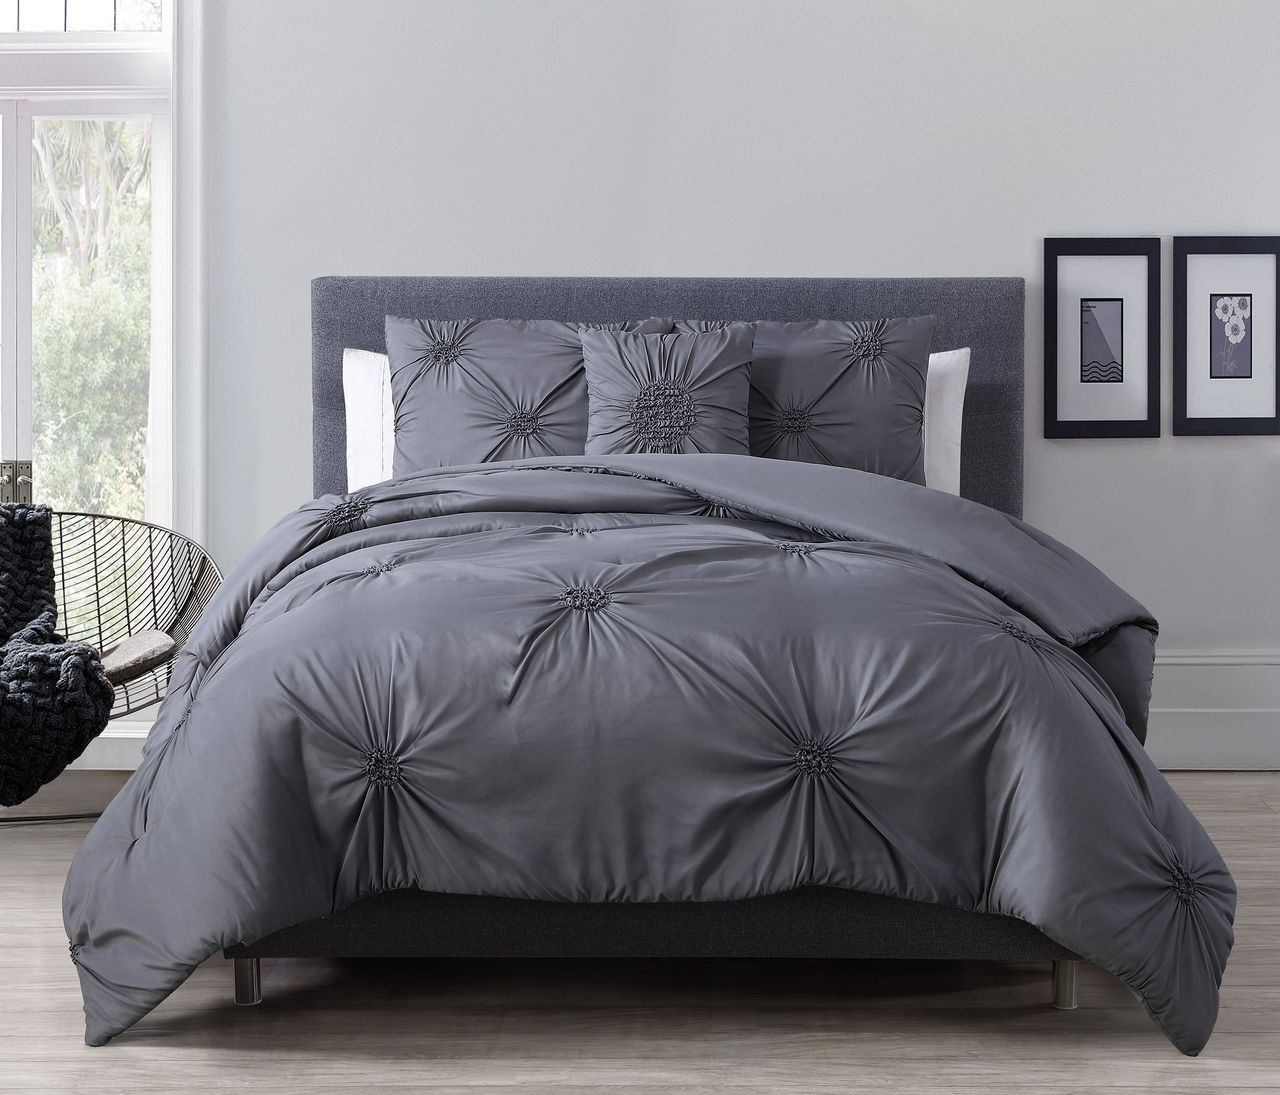 Charcoal Grey Bedding 4 Piece Paige Charcoal Gray Comforter Set